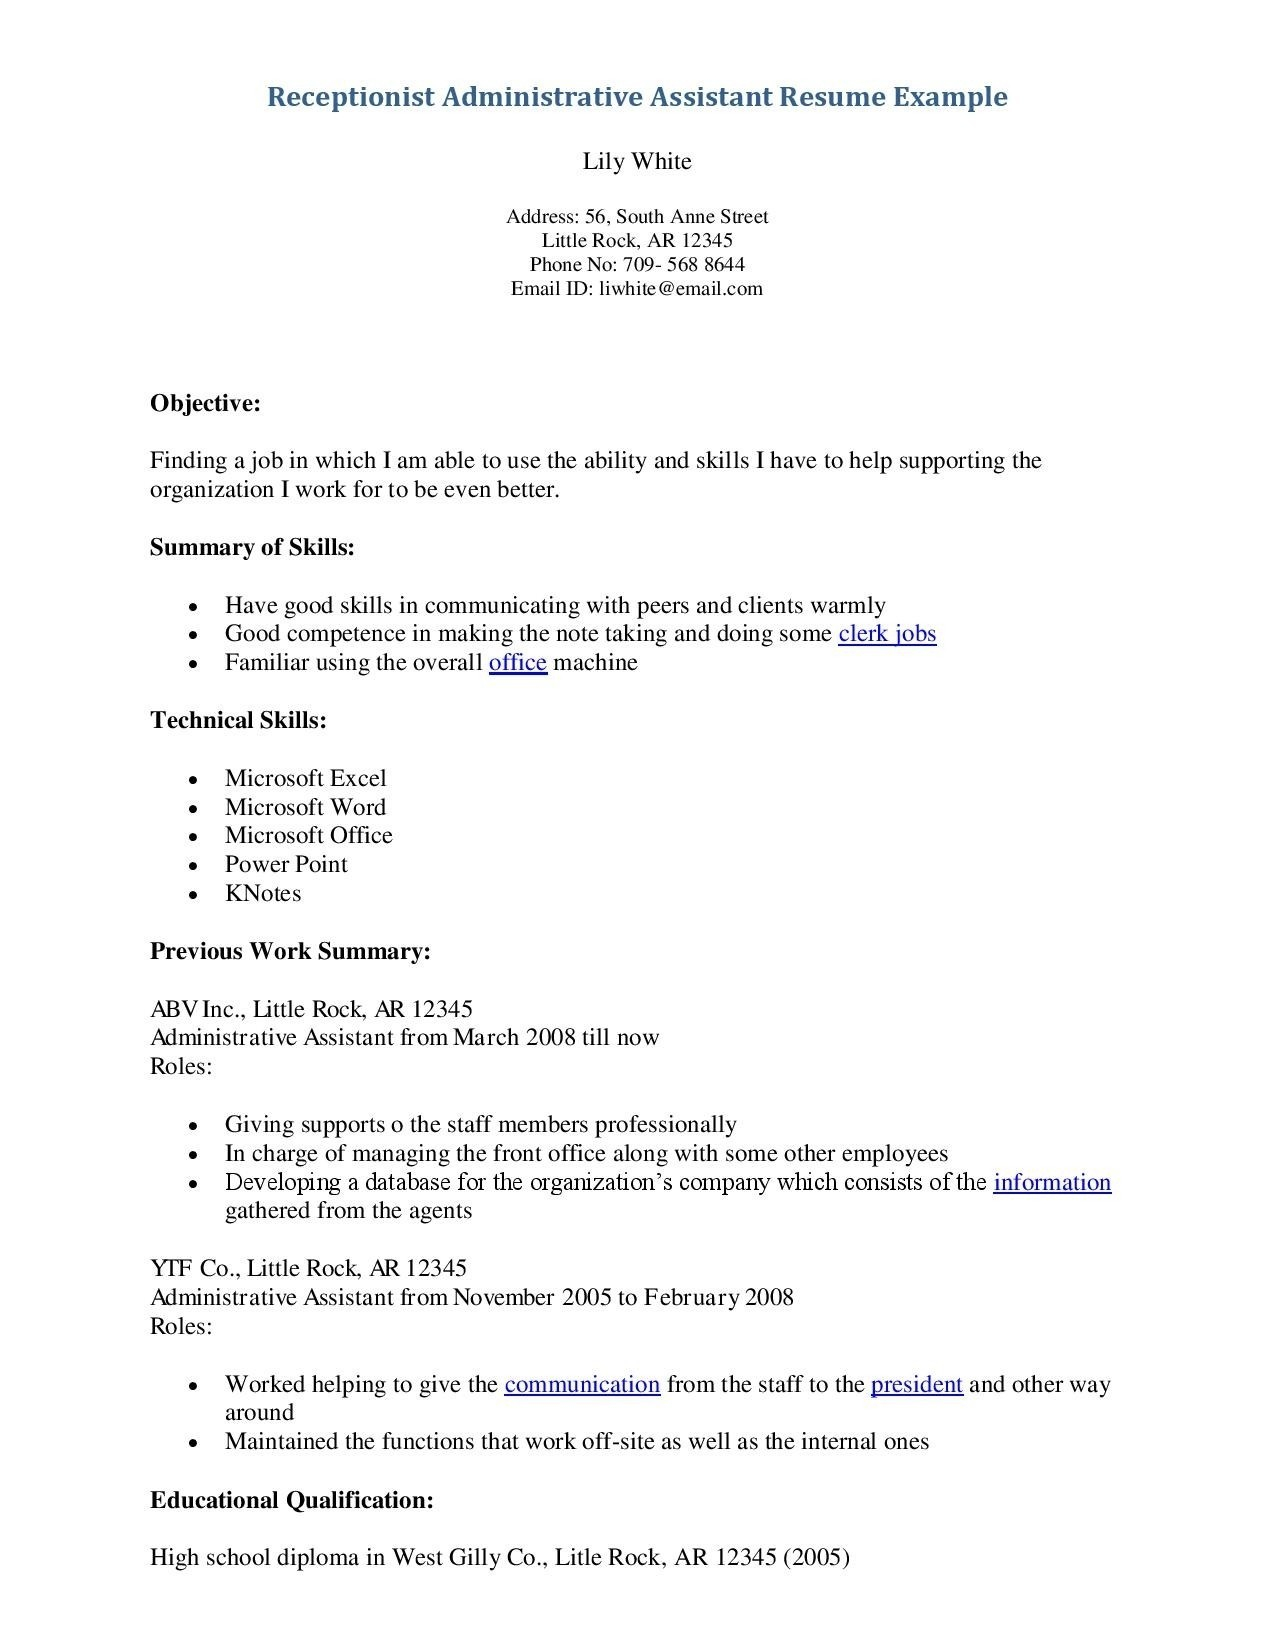 Resume Examples for Receptionist Job - Resume Objective Examples for Receptionist Save 30 Great